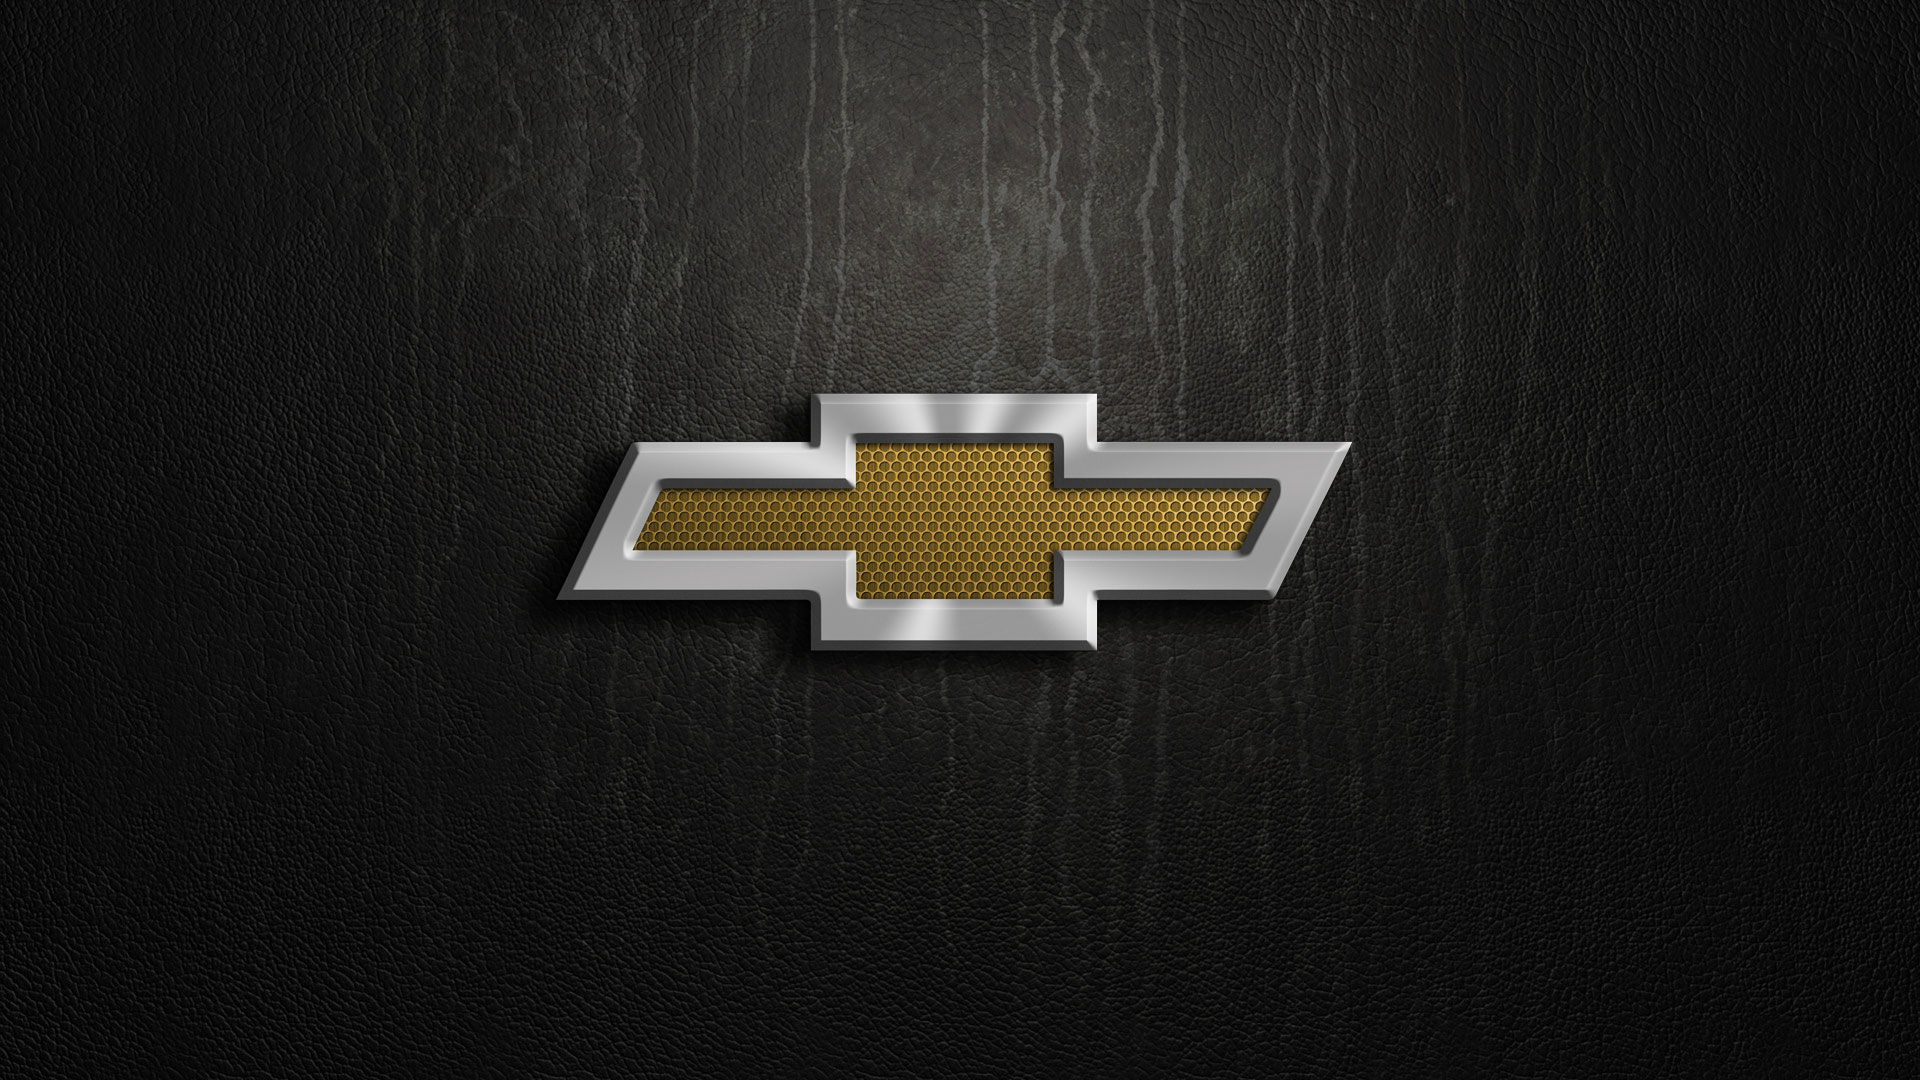 Chevy Logo Wallpaper HD-6